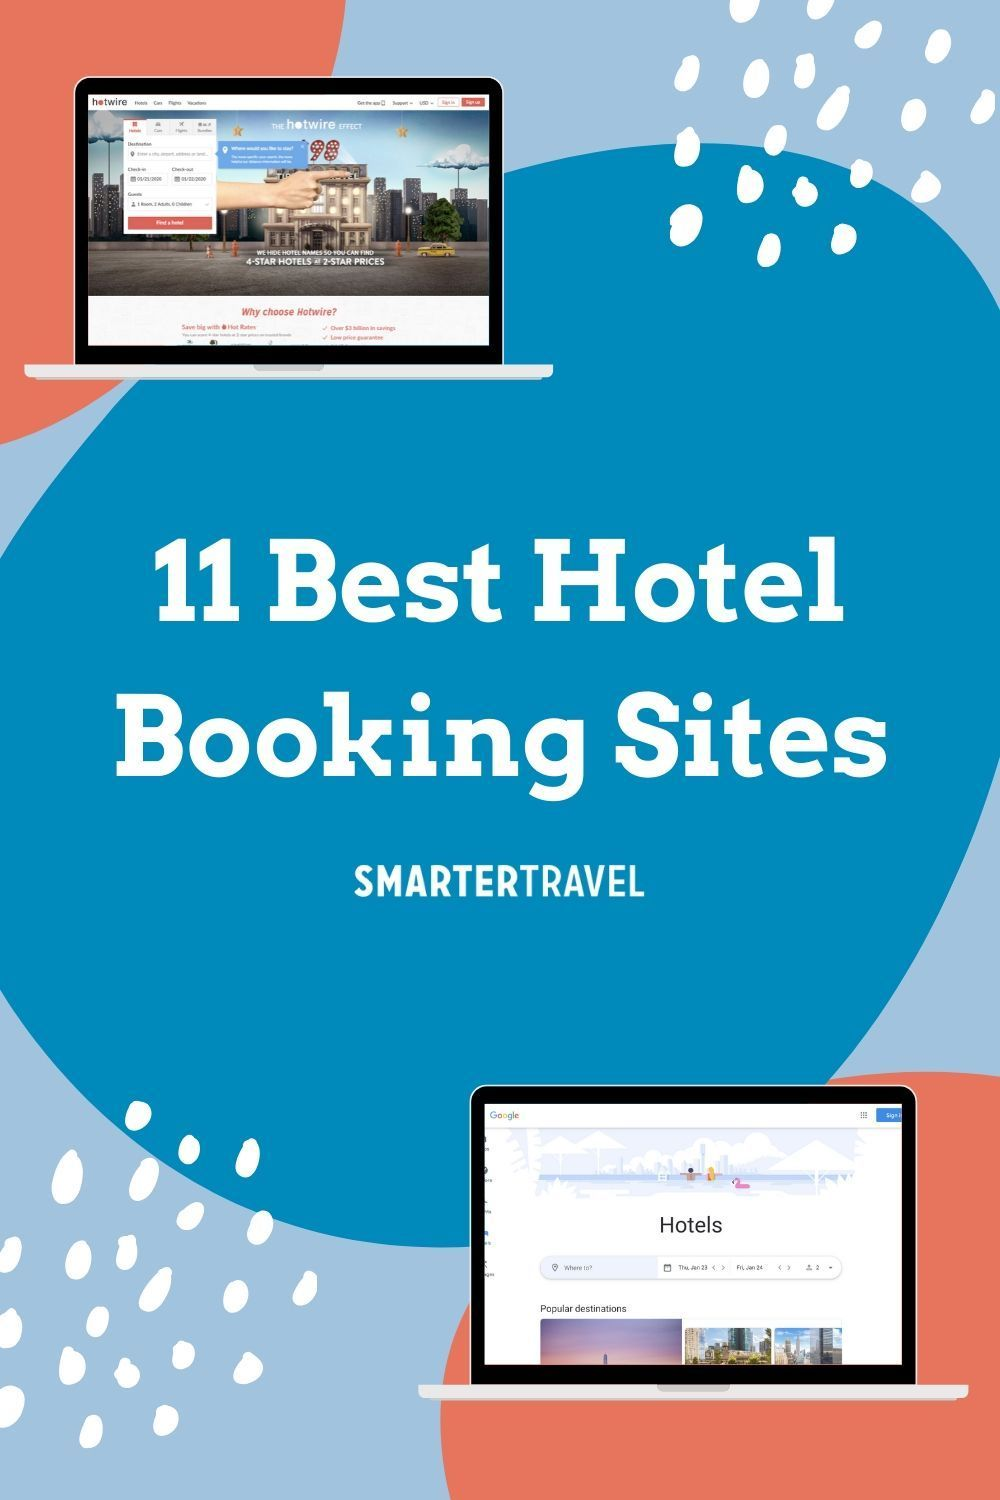 From metasearch engines that send you to company sites, to bookable OTAs (online travel agencies), to corporate hotel sites, the options for the best hotel booking sites can be overwhelming. But when doing your hotel search, deciding which sites to compare should depend on how often they offer the best hotel deals, and how you prefer to view and filter search results.